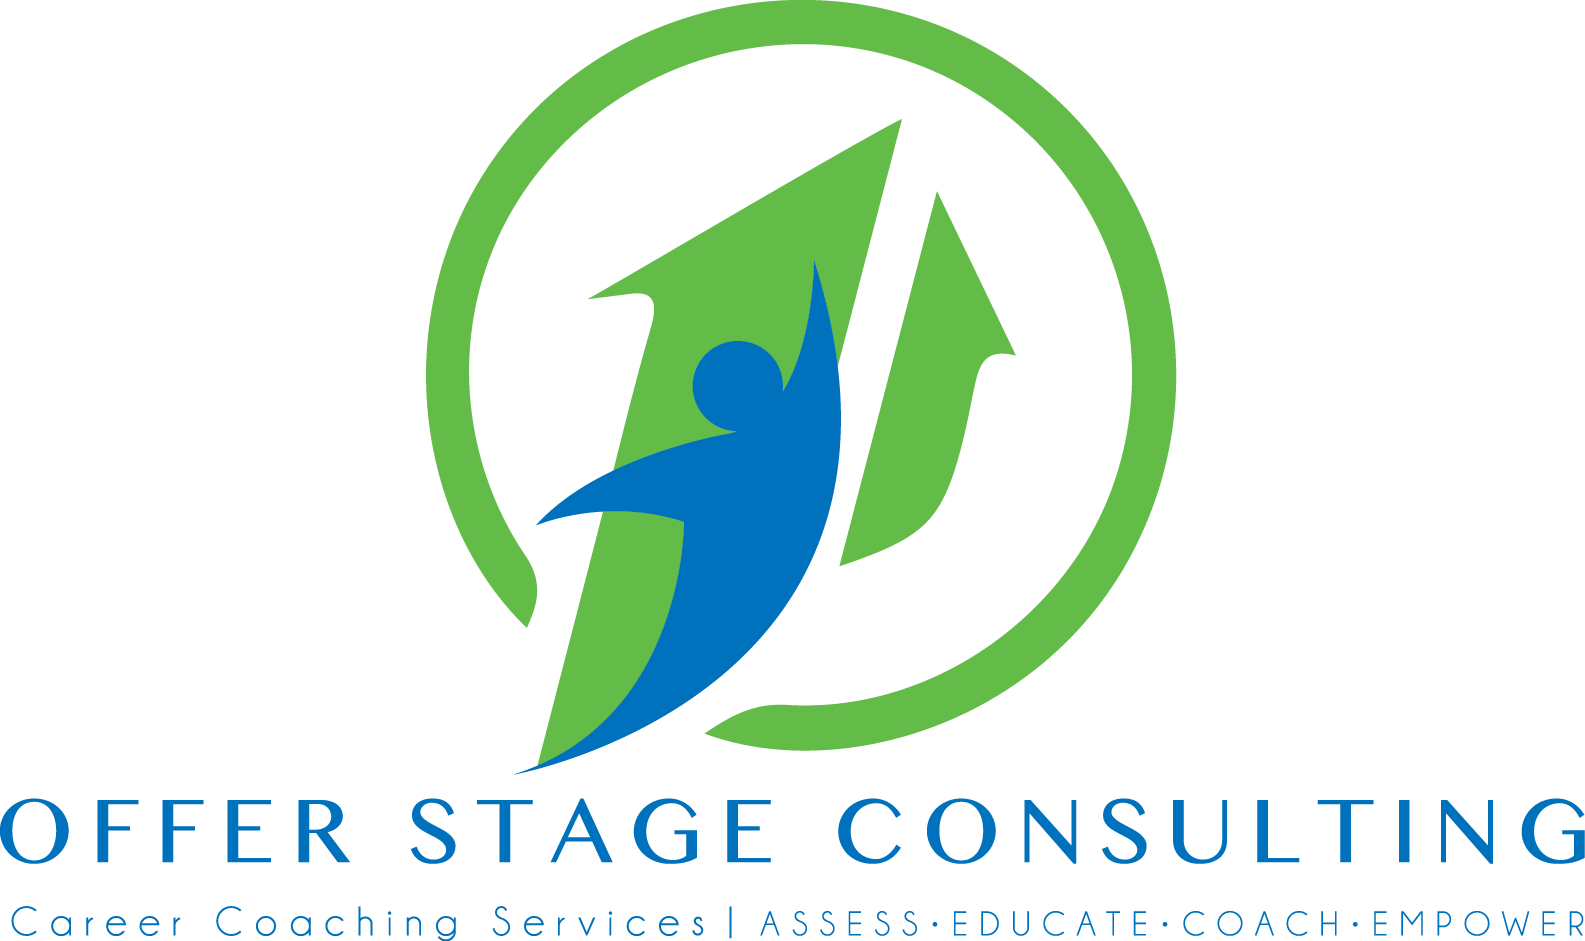 Offer Stage Consulting